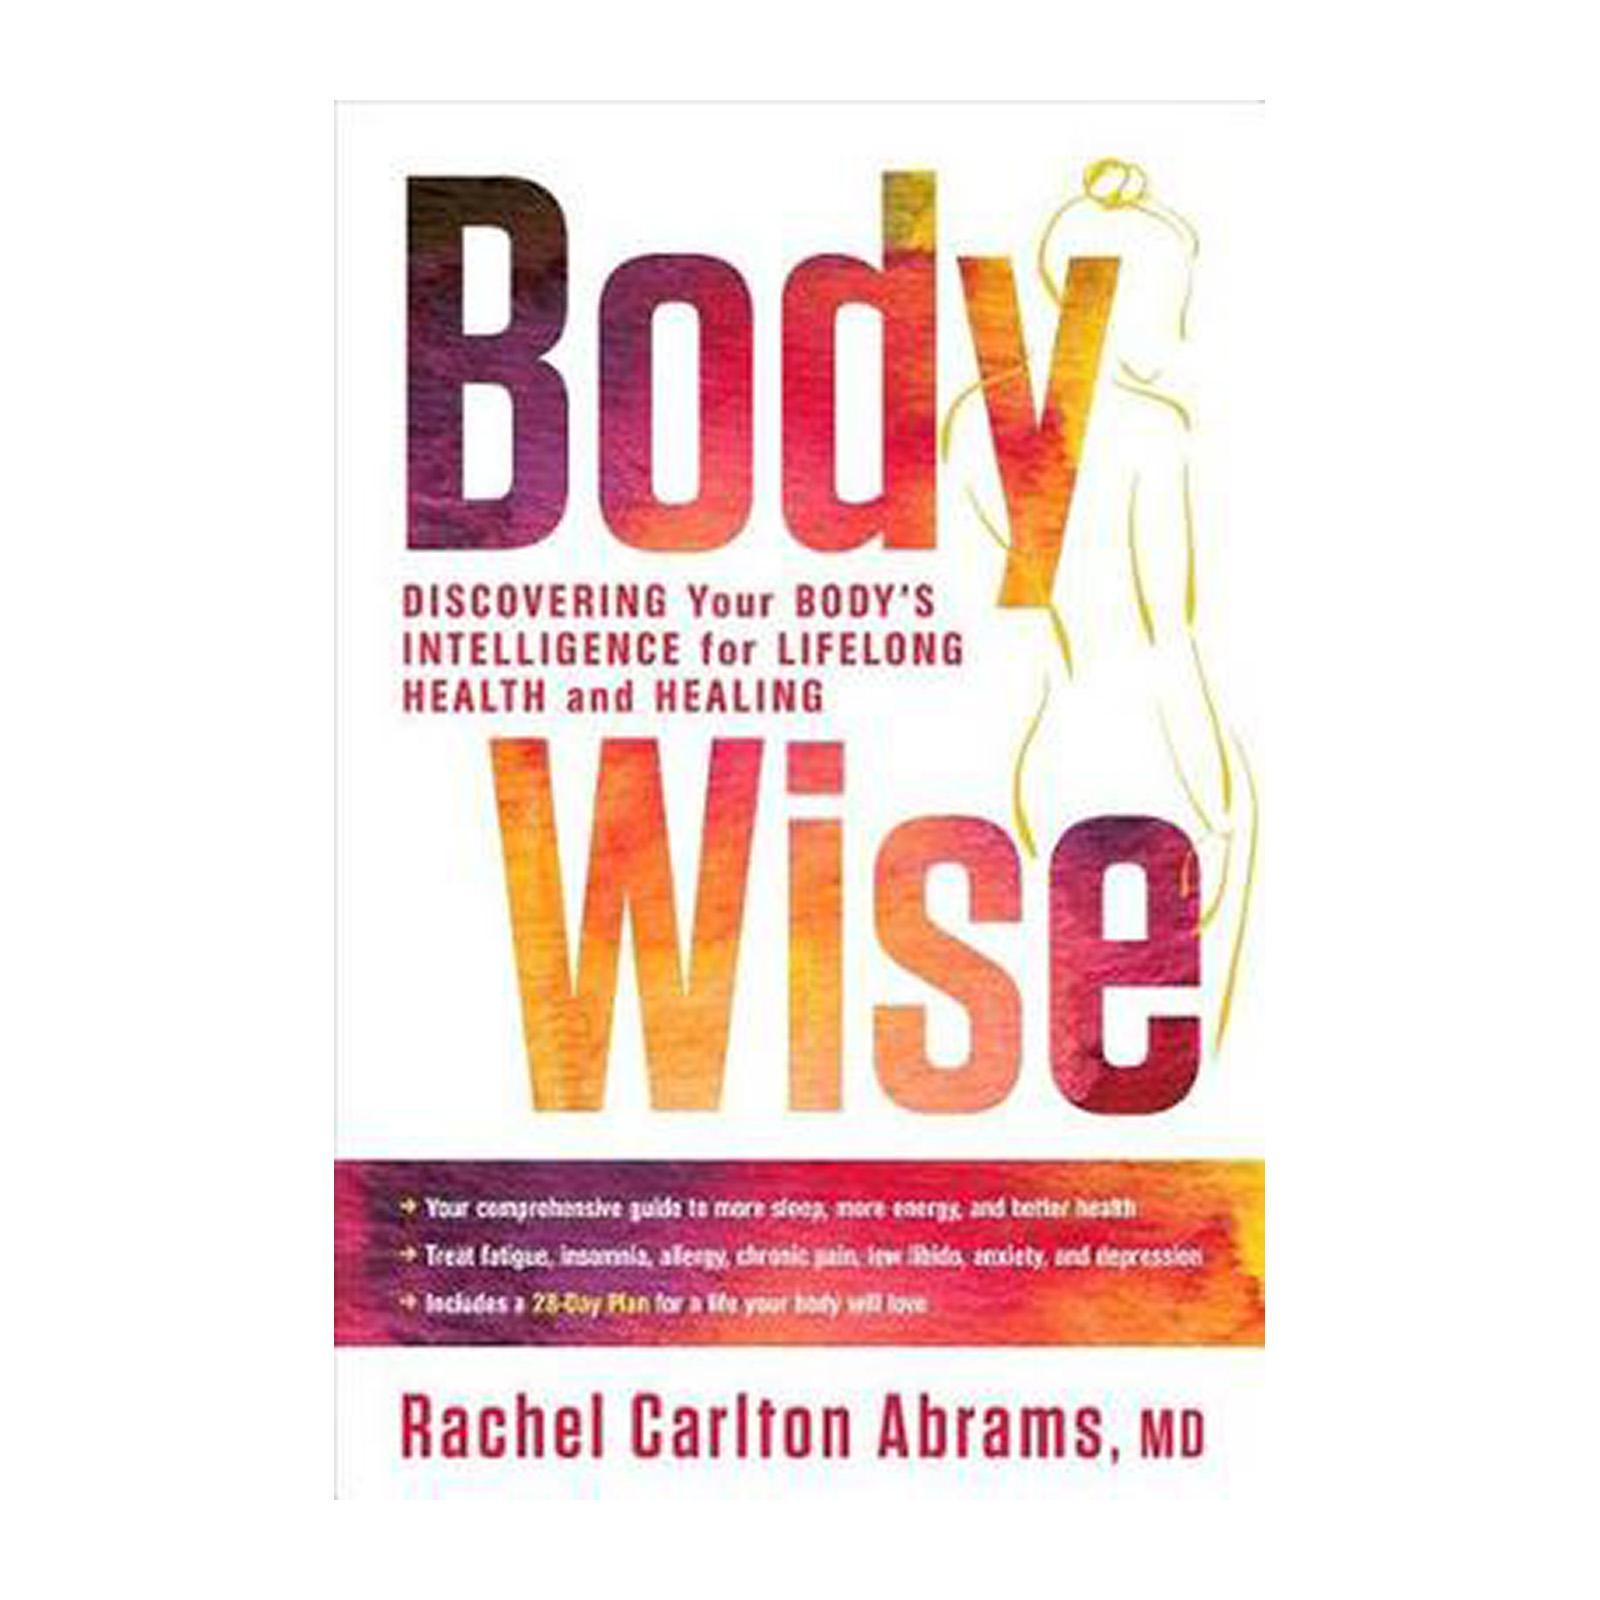 Bodywise: Discovering Your Bodys Intelligence For Lifelong Health And Healing (Hardcover)